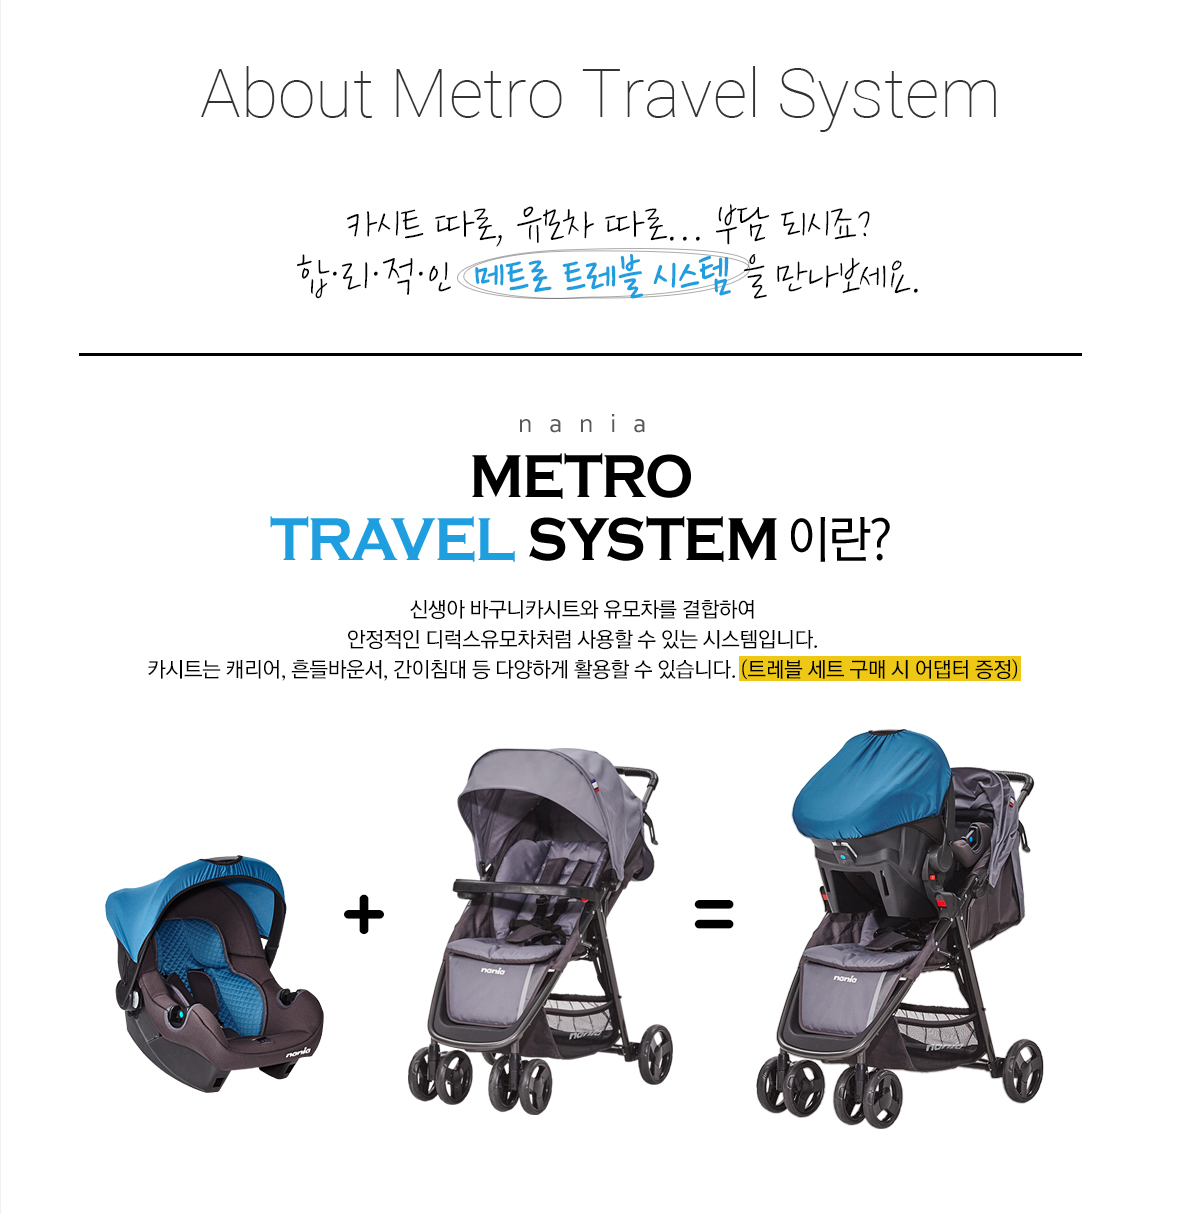 About Metro travel system